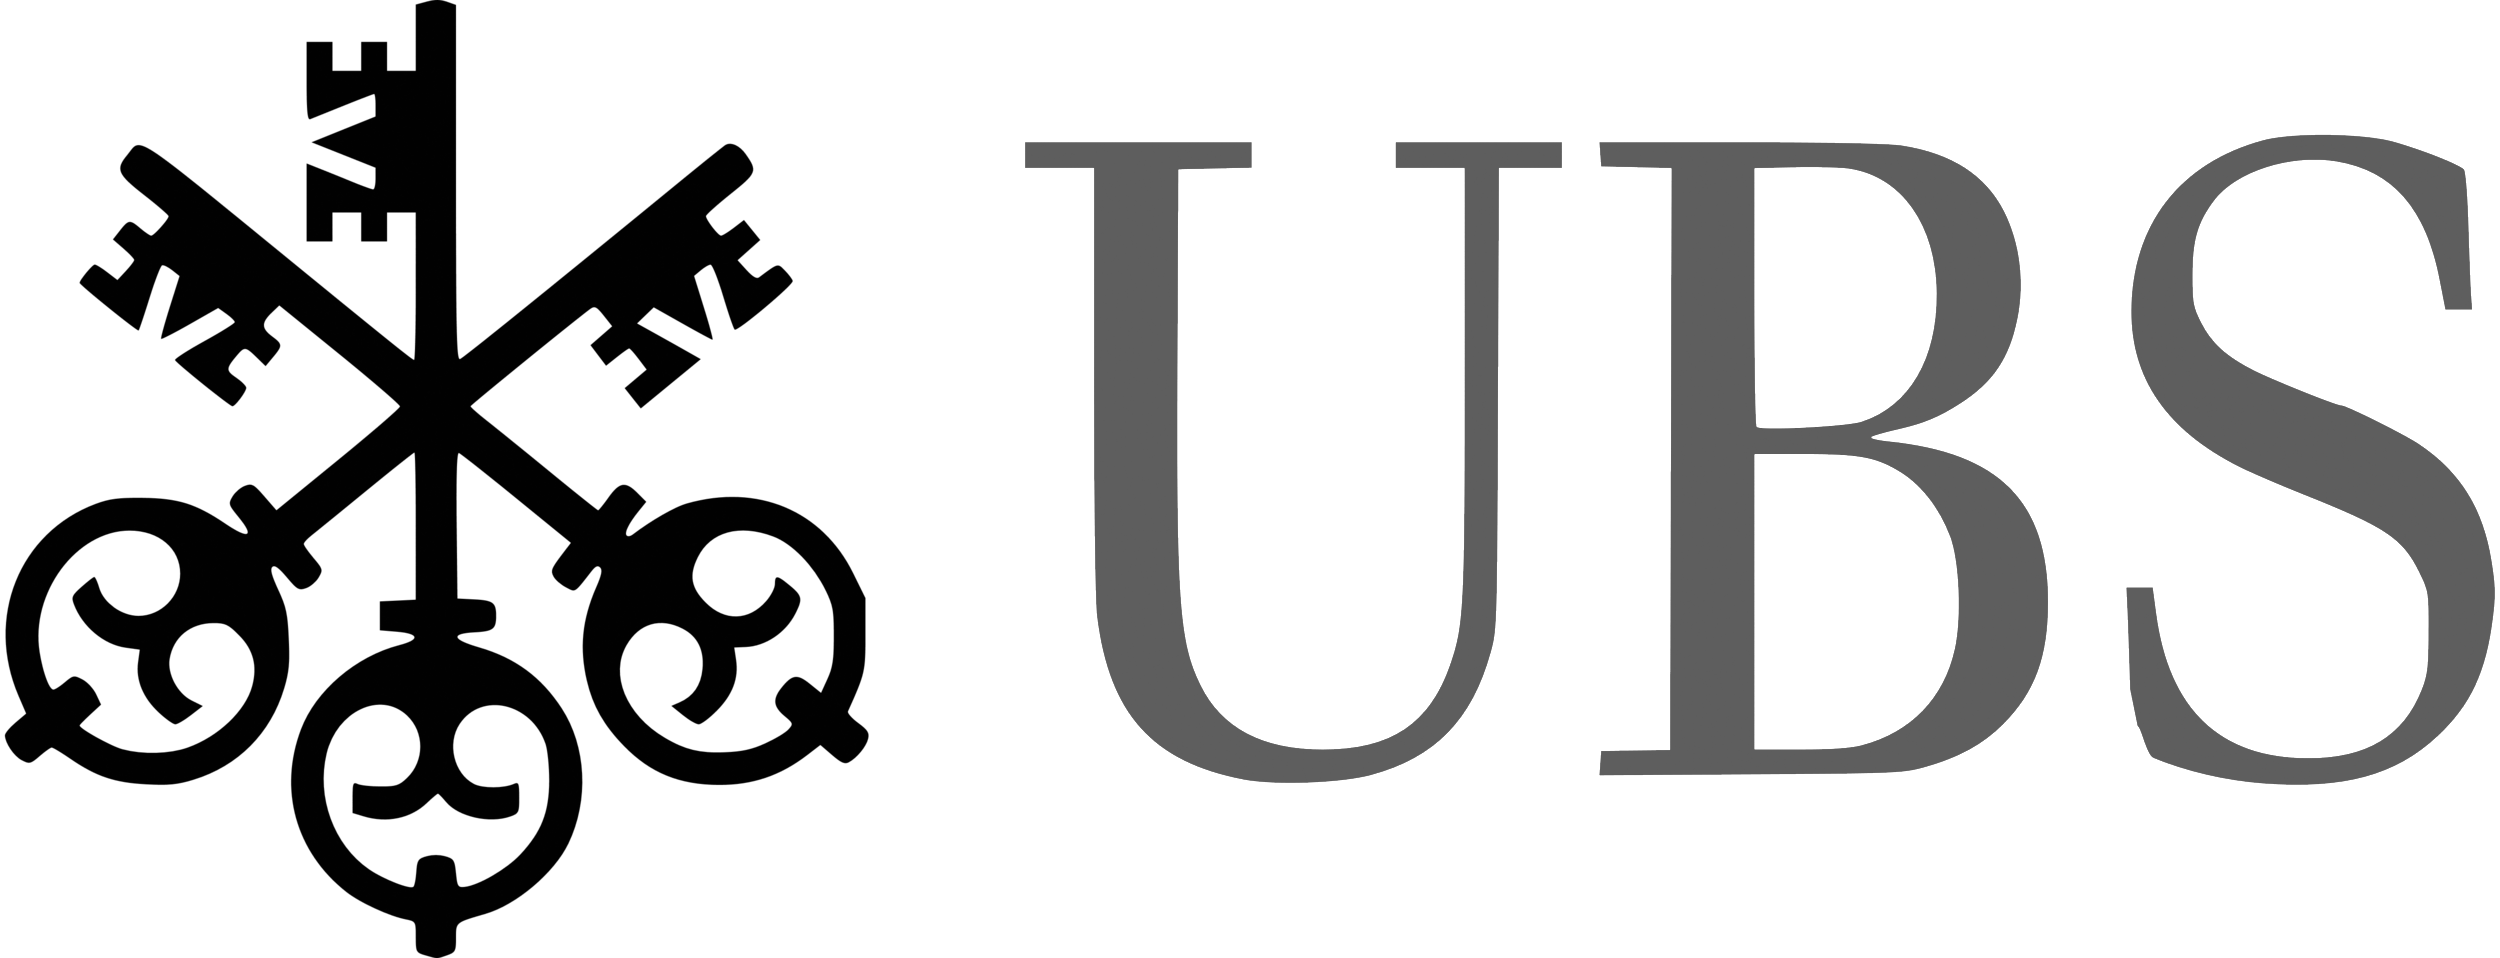 UBS_logo_Grayscale.png